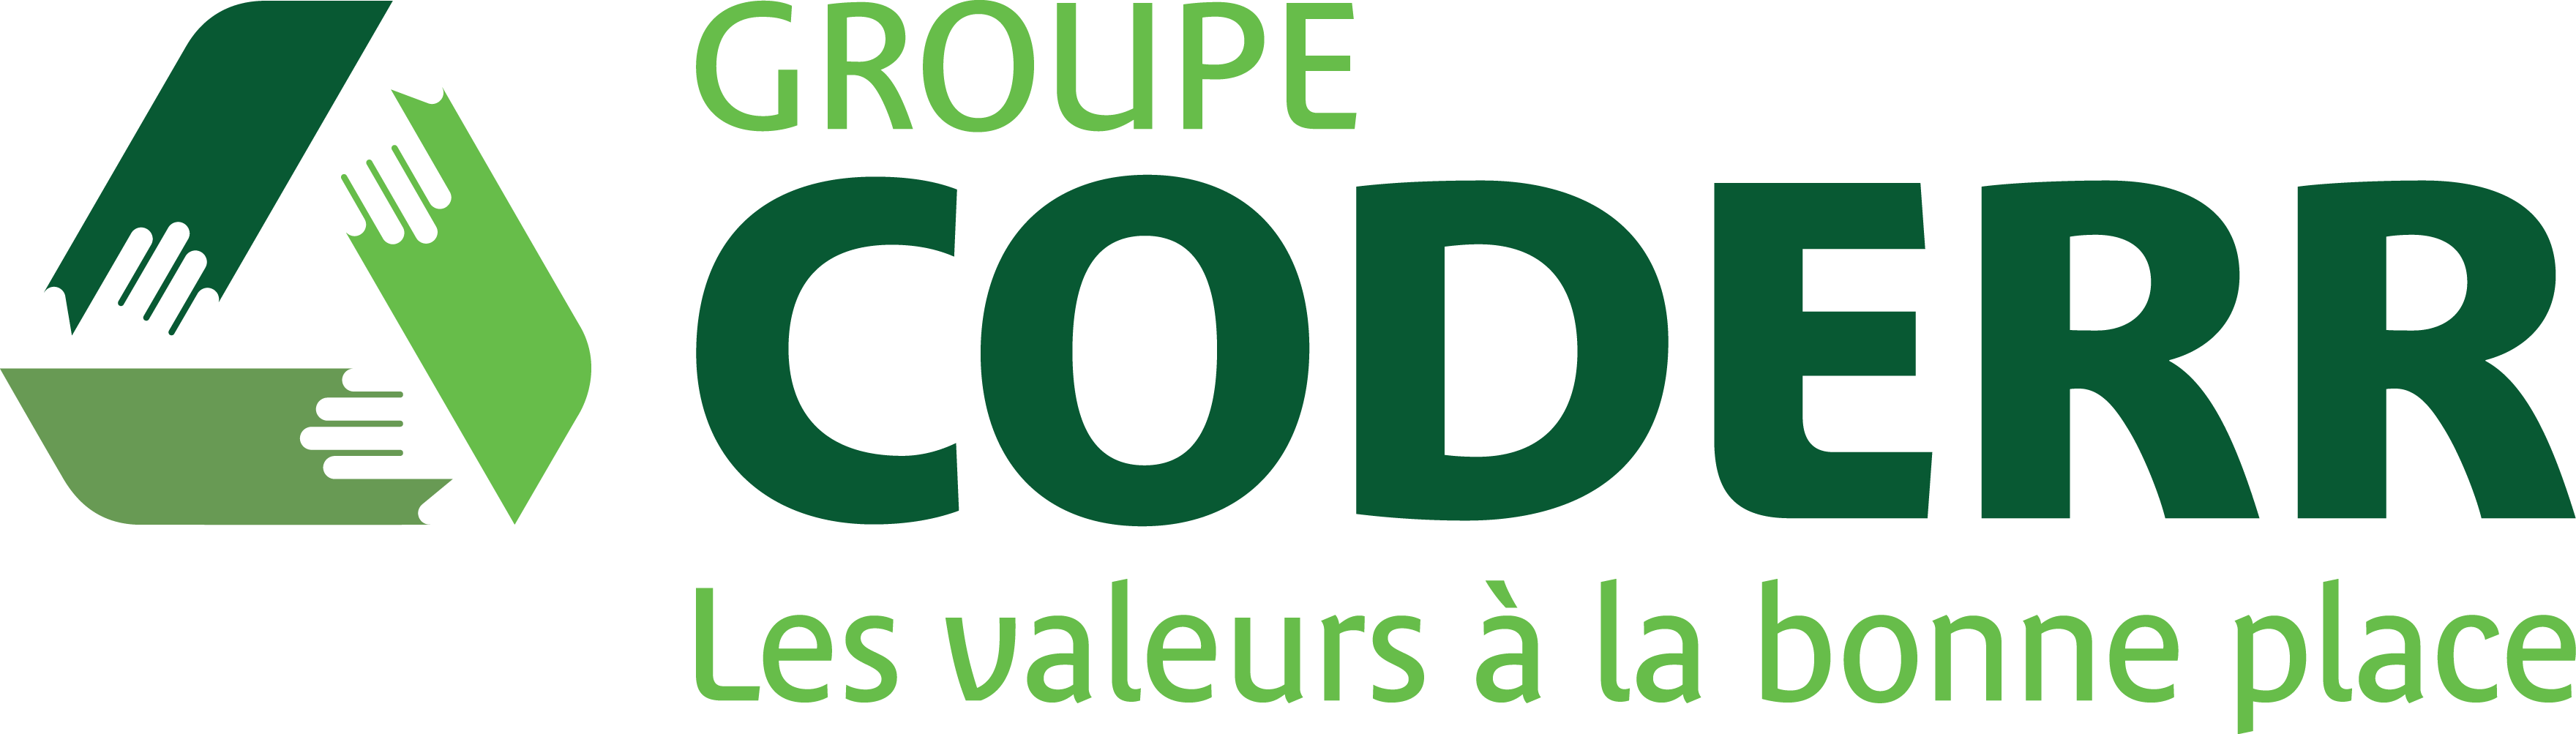 logo de Groupe Coderr